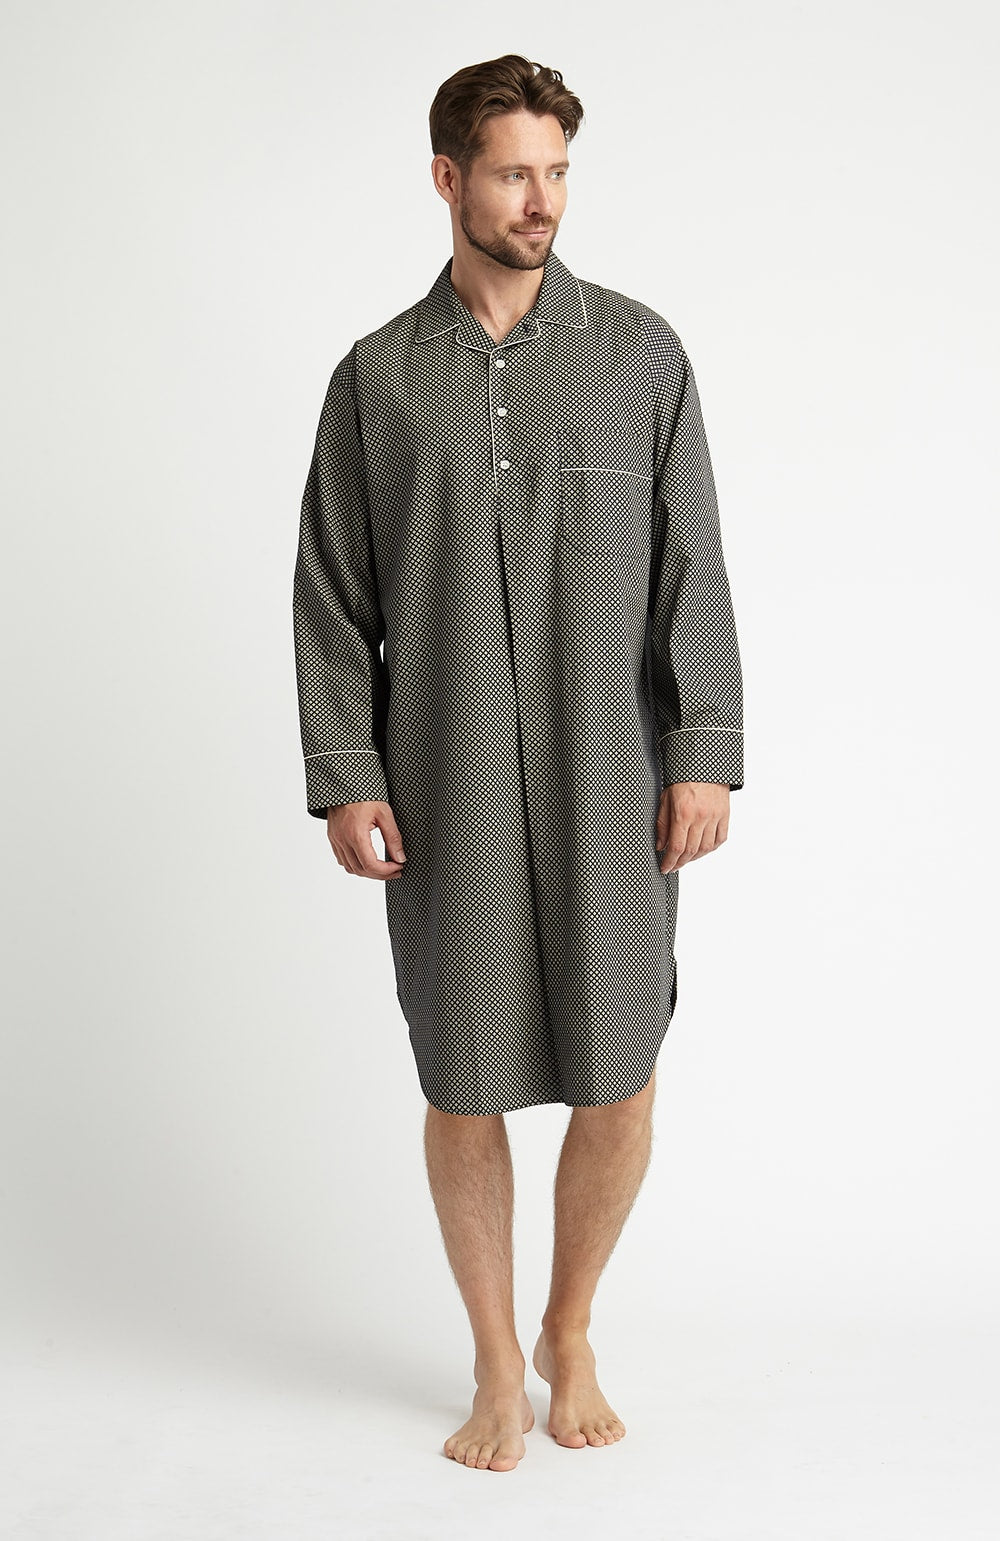 Printed Cotton Nightshirt (tmnm) - Charcoal Motif